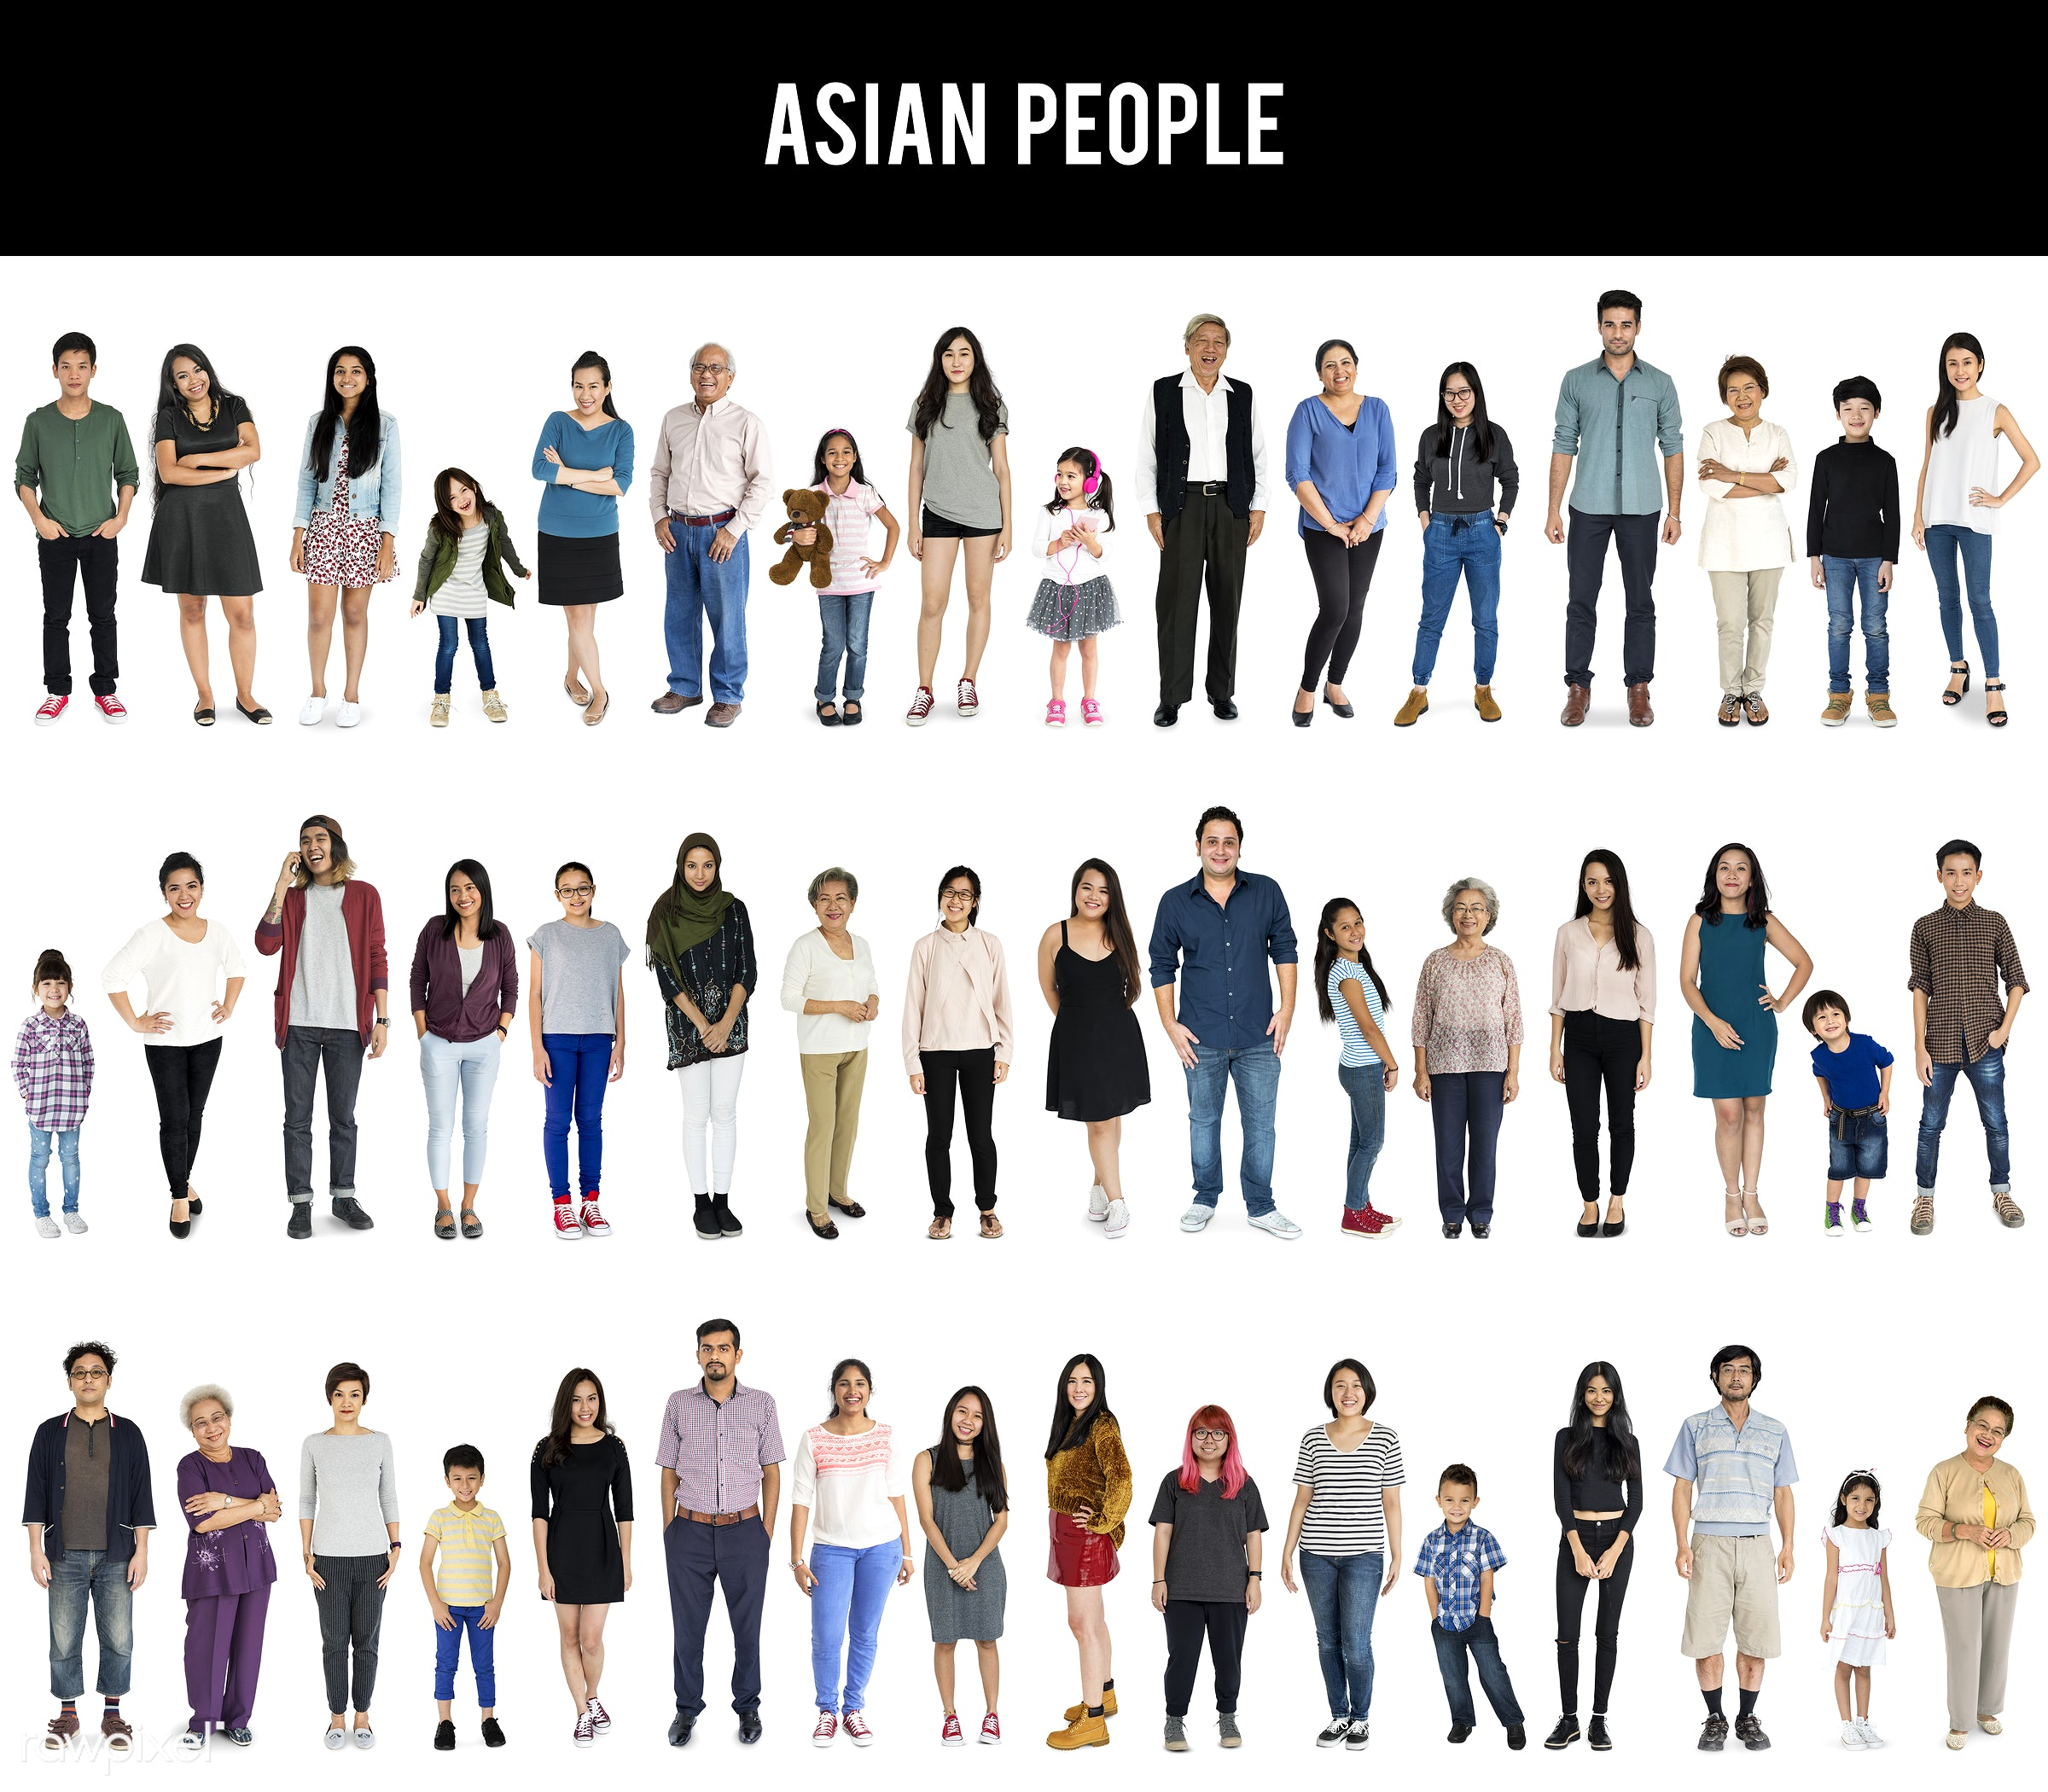 gentlemen, studio, person, diverse, personality, people, race, together, attraction, asian, black hair, woman, lifestyle,...